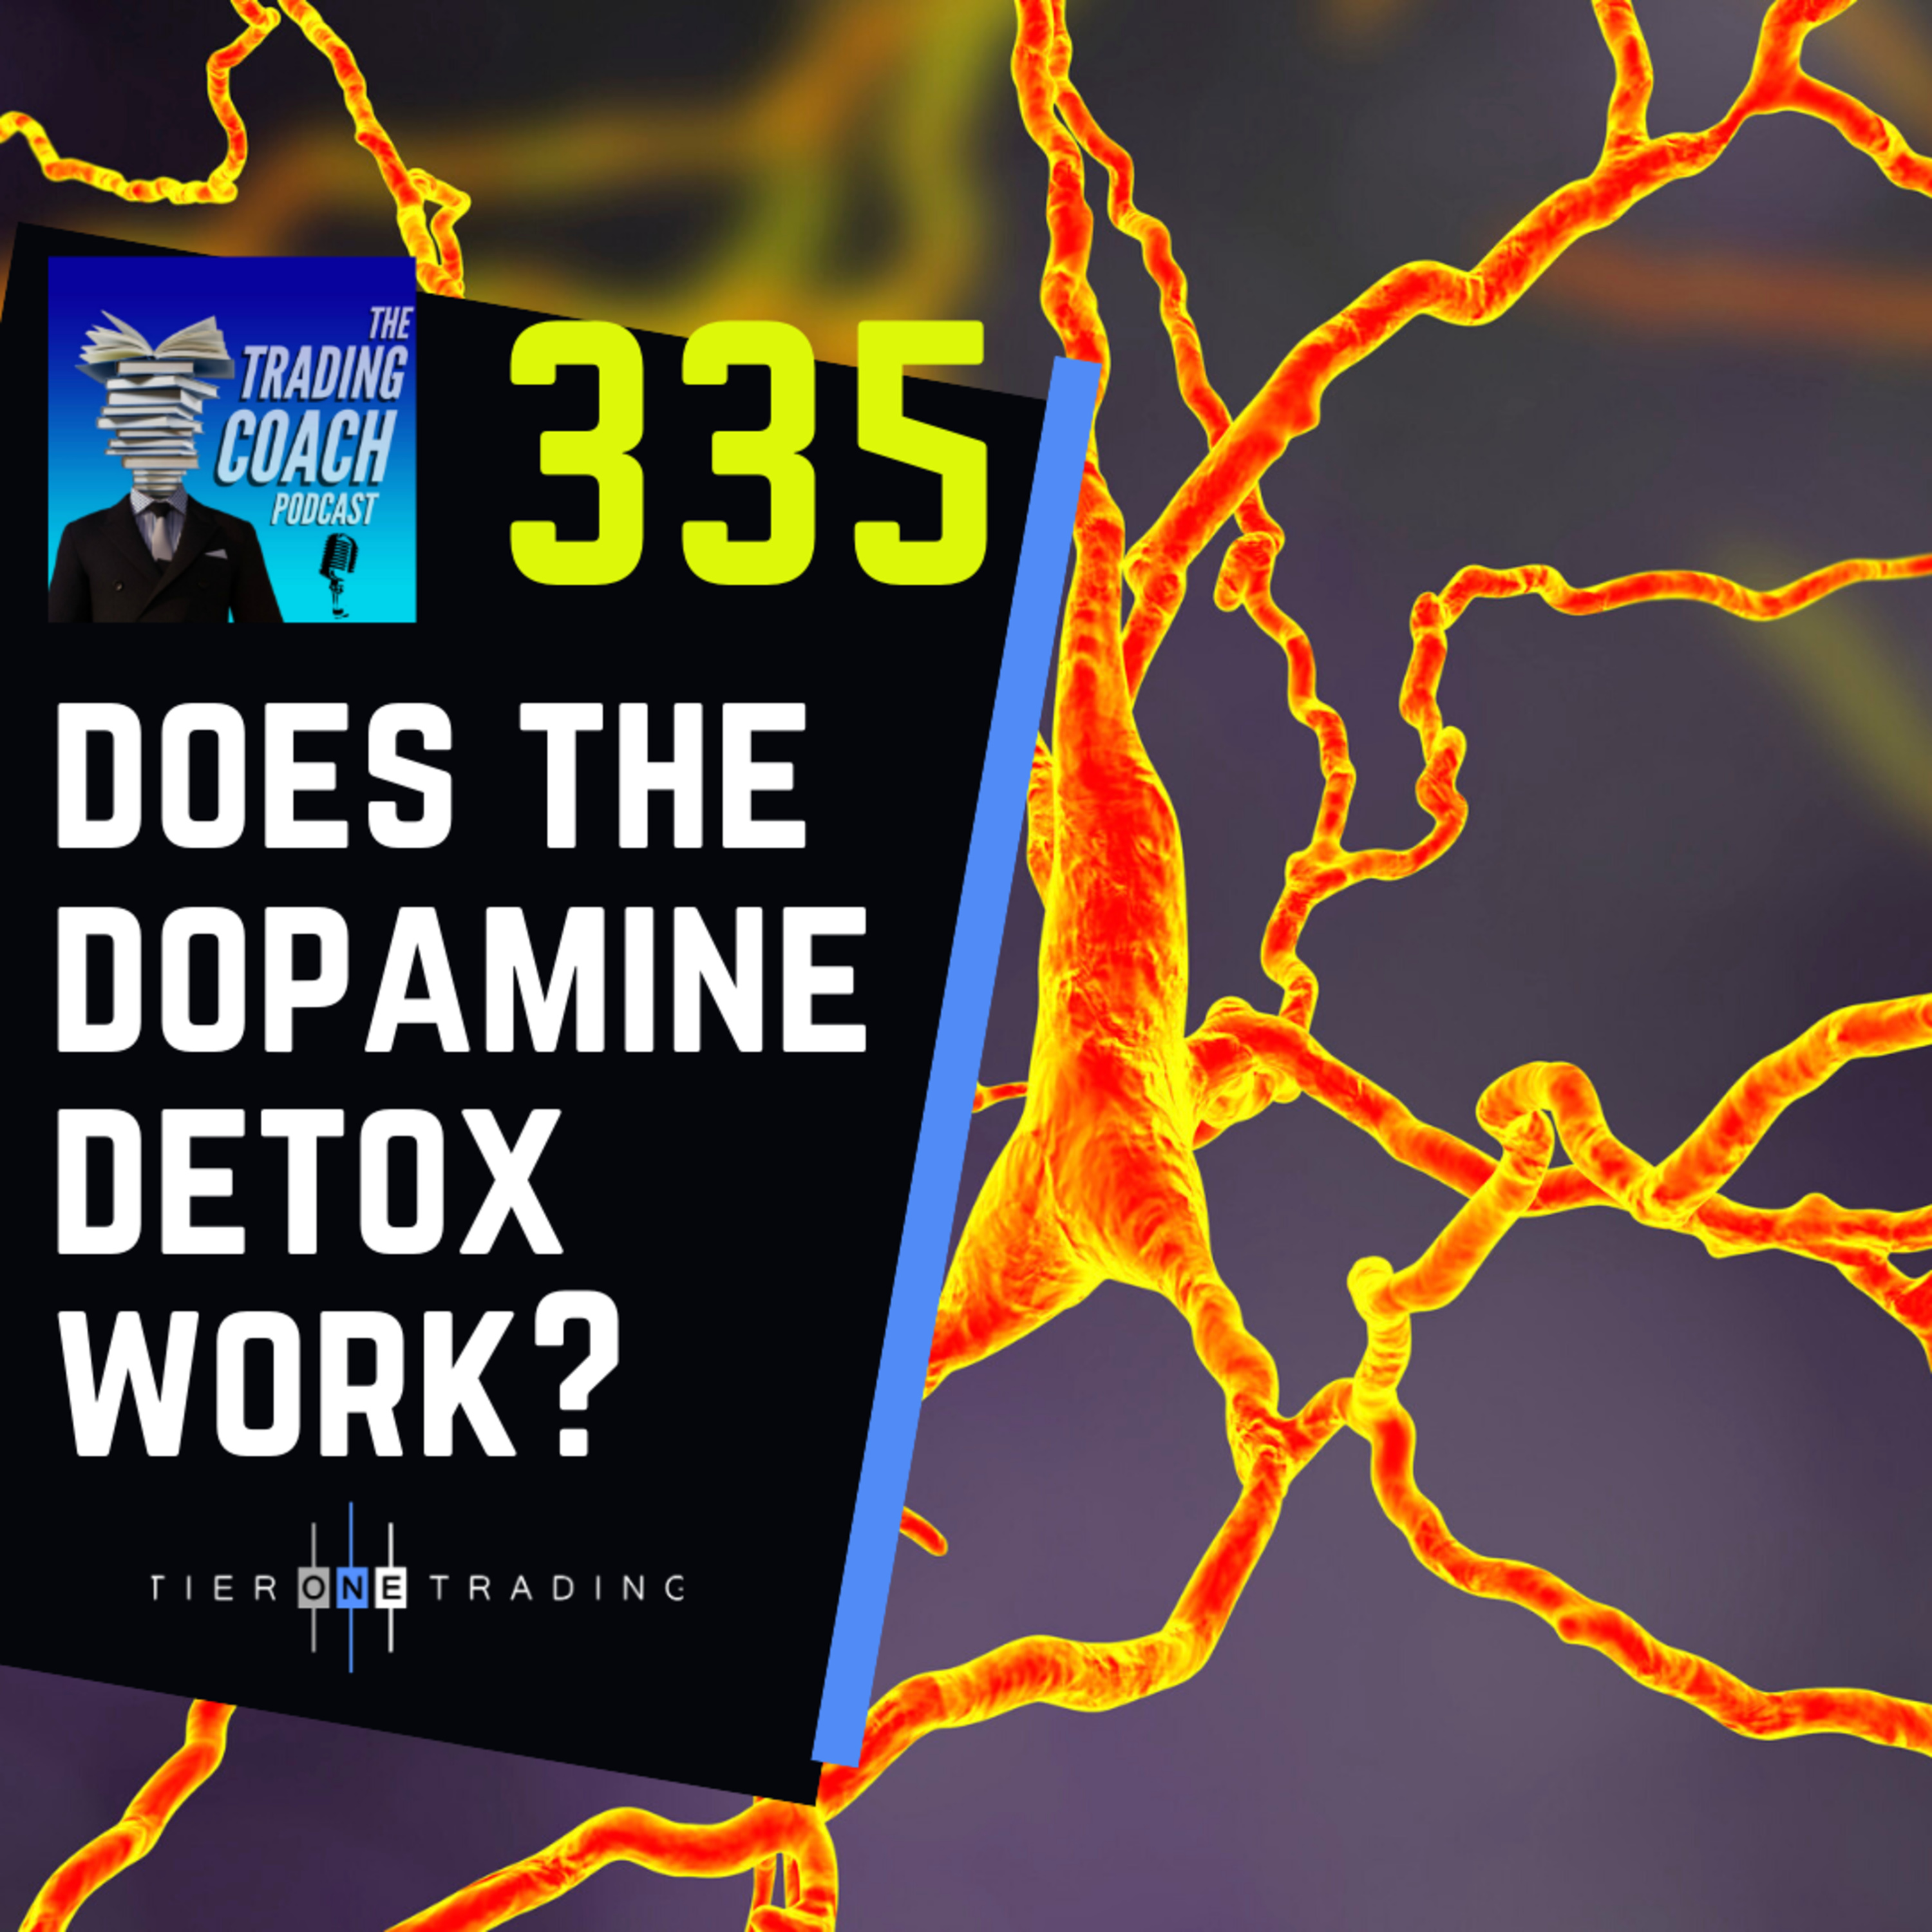 335 - Does The Dopamine Detox Work?